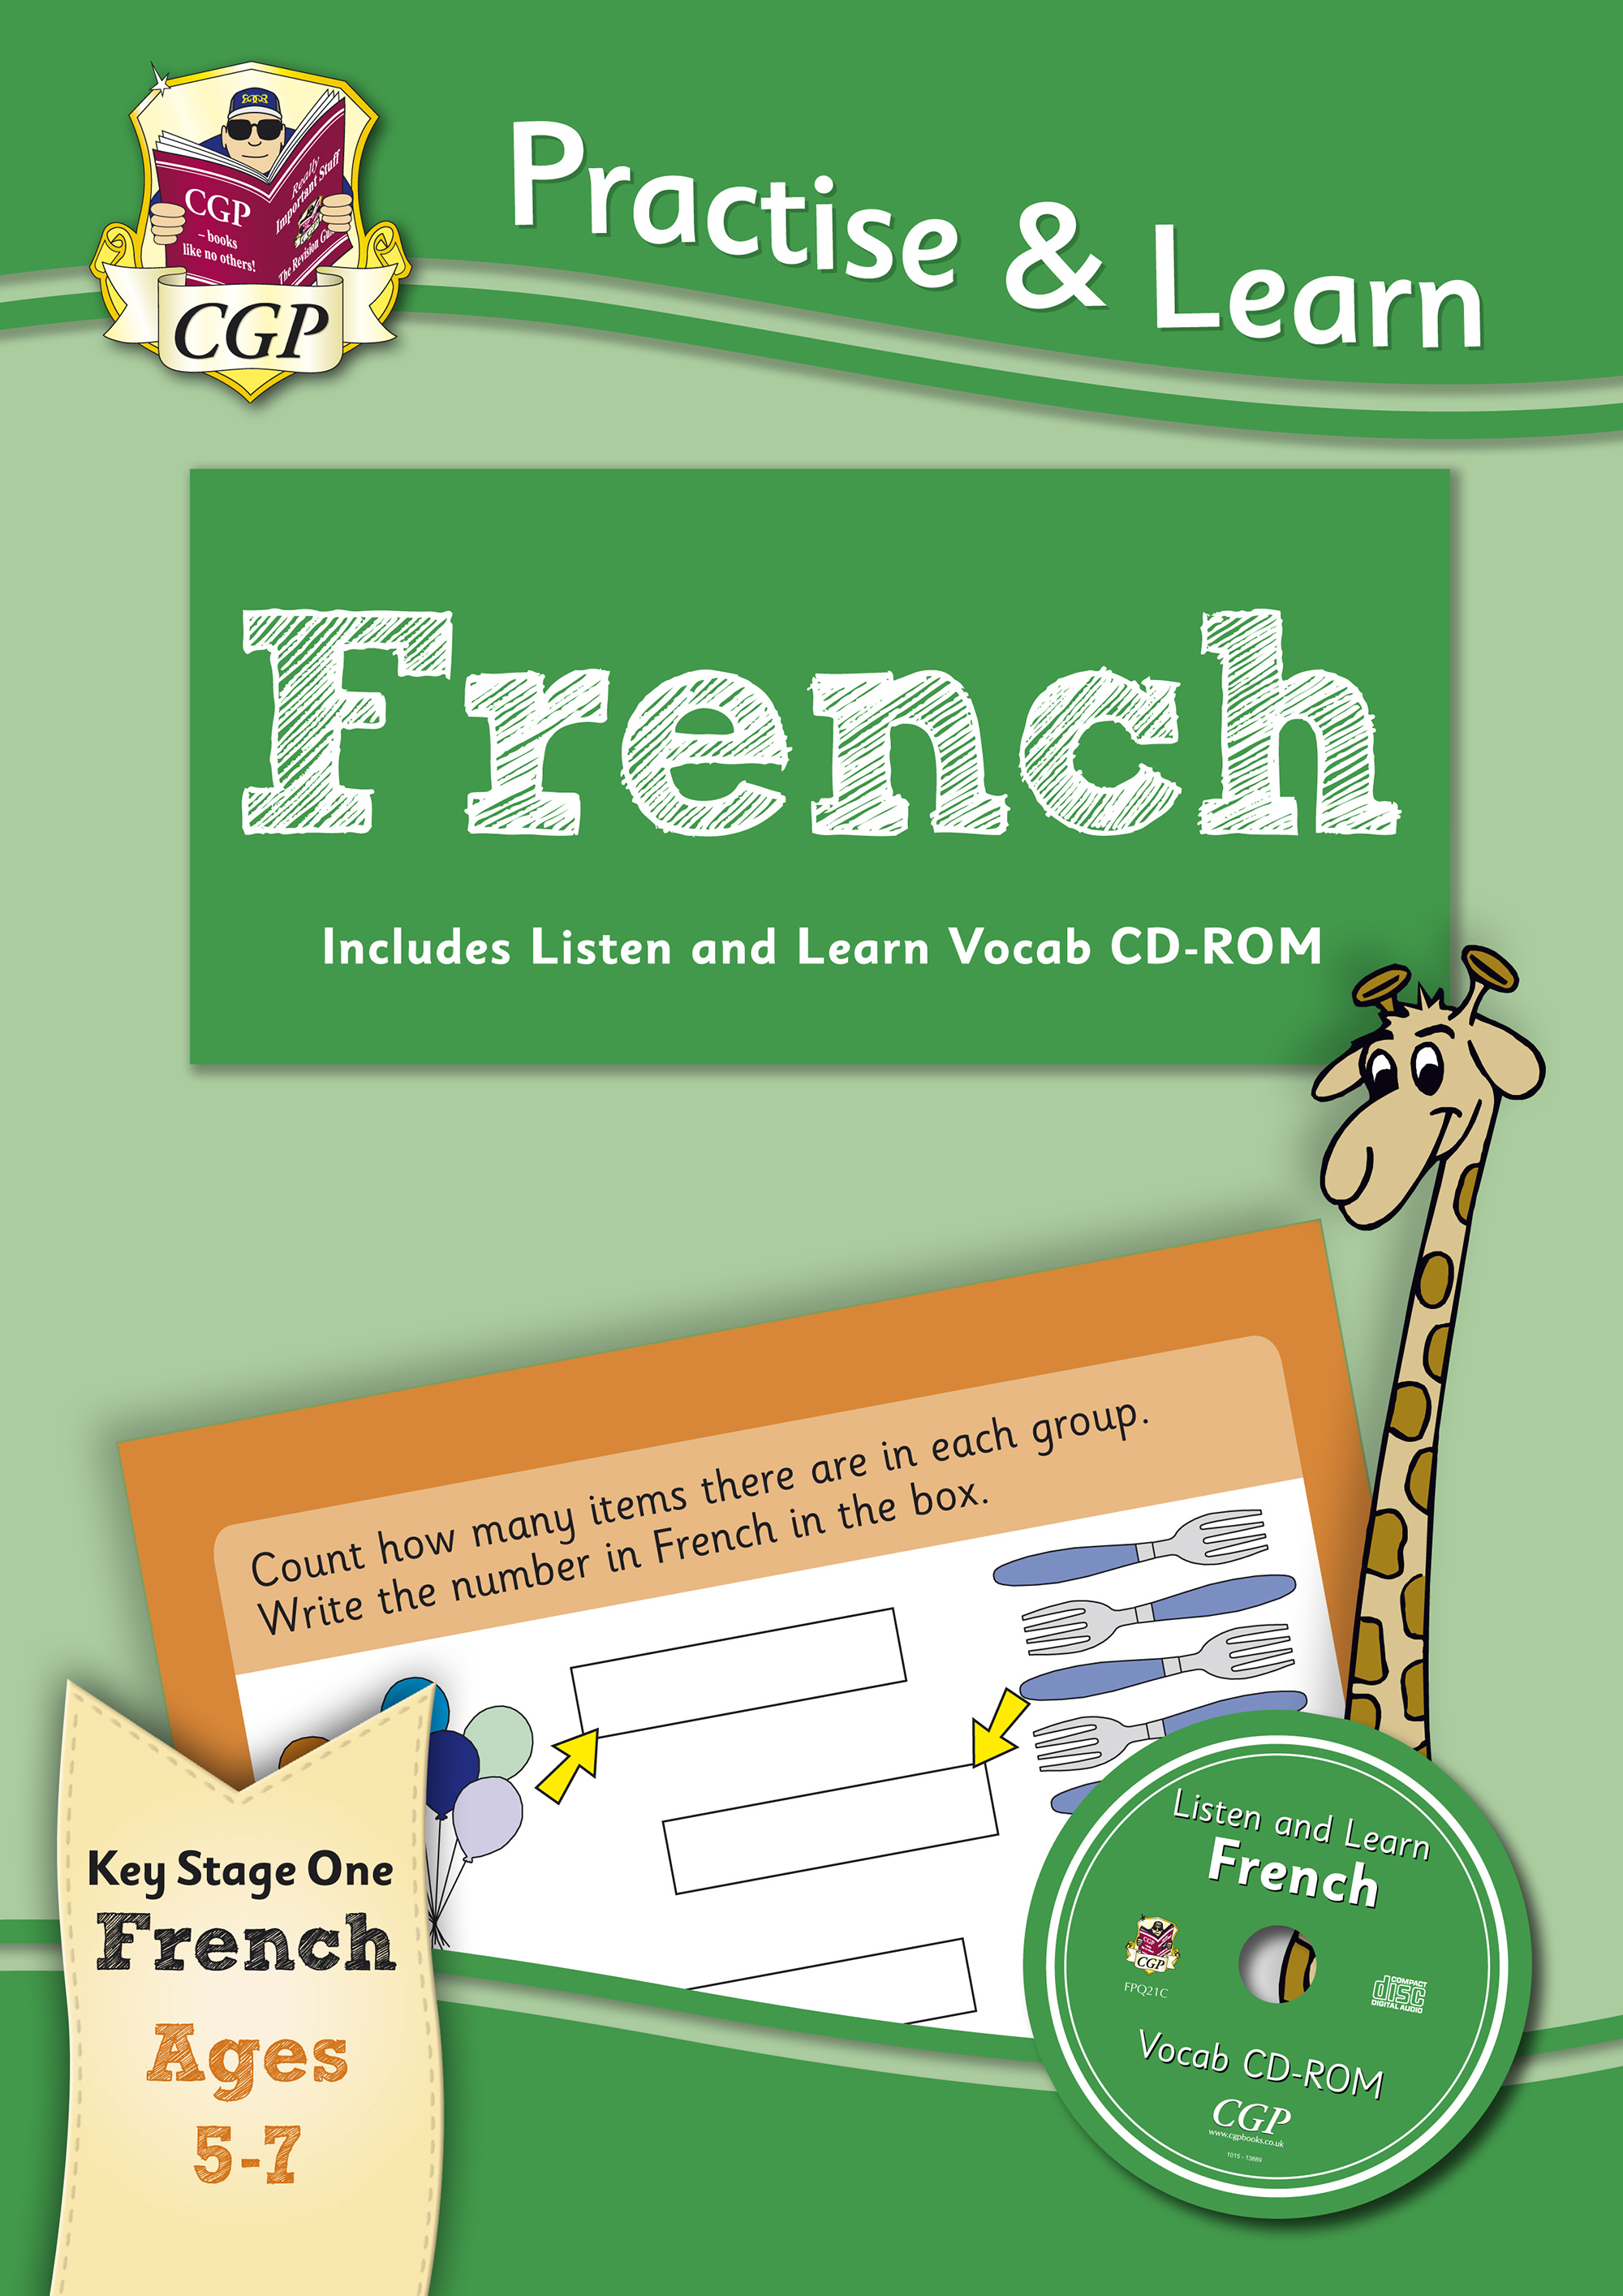 FPQ12 - New Practise & Learn: French for Ages 5-7 - with vocab CD-ROM